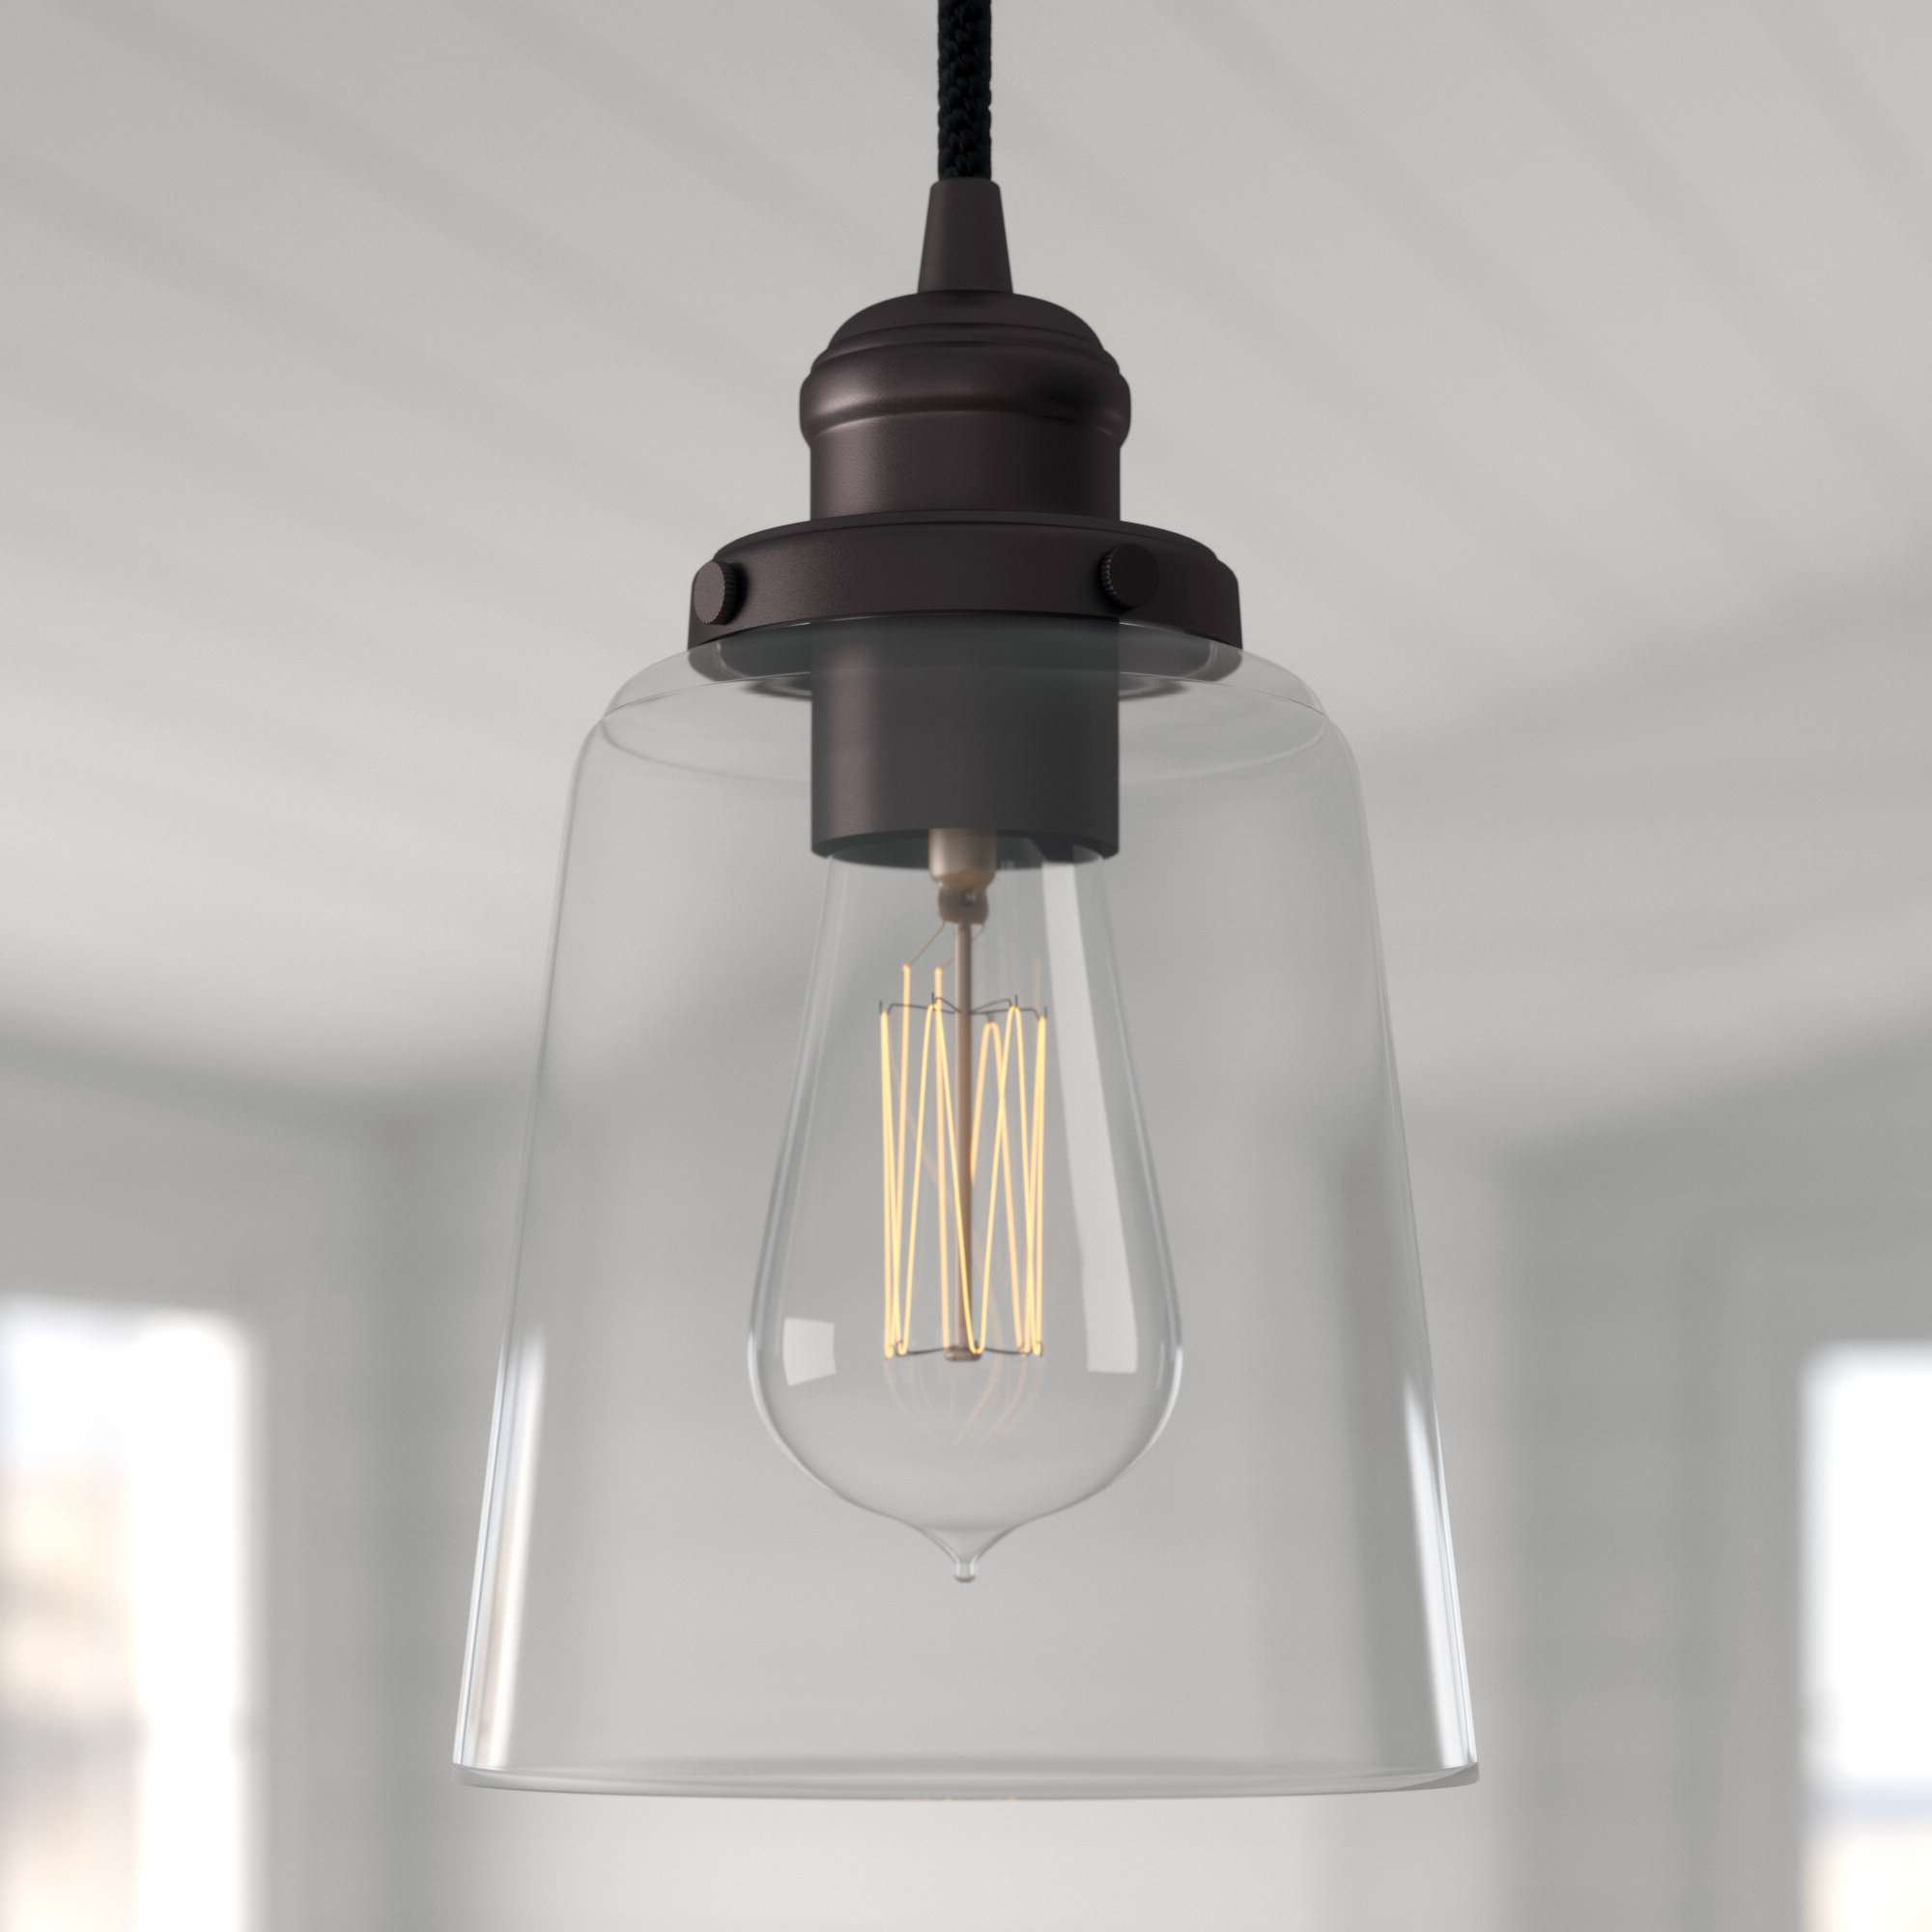 Wayfair Pertaining To Most Current Schutt 5 Light Cluster Pendants (View 8 of 25)